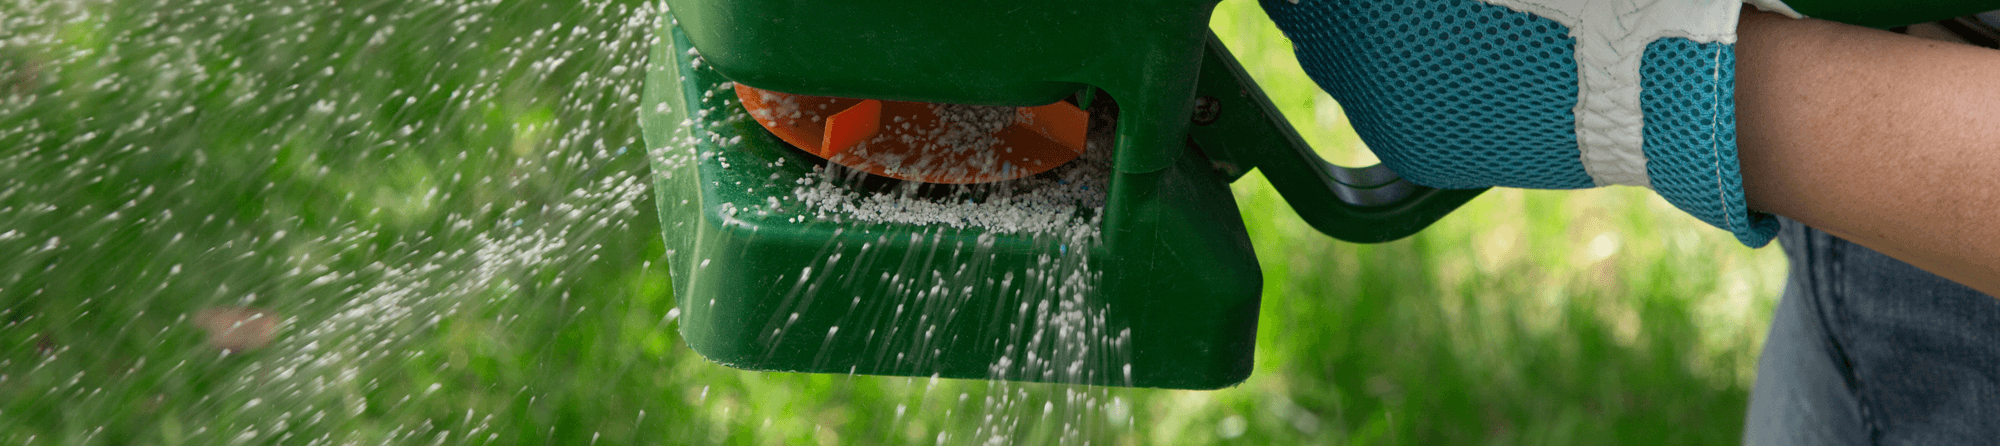 spreading tiny grass seeds from green spreader